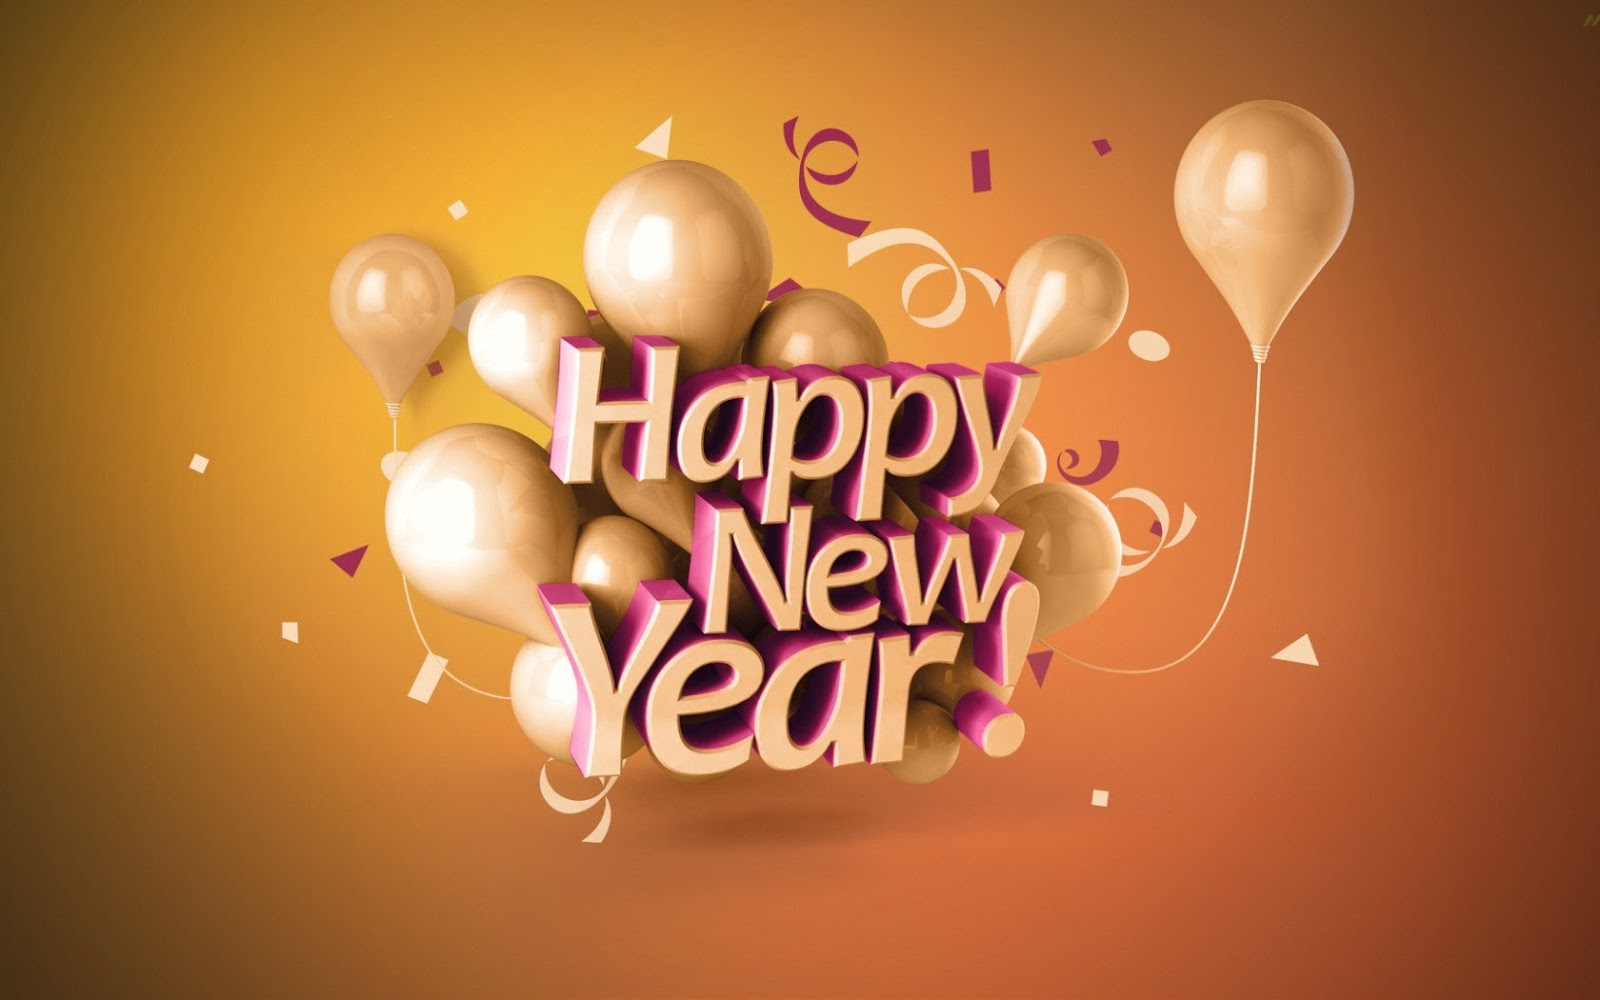 Happy new year 2019 wishes greetings messages happy new year pic m4hsunfo